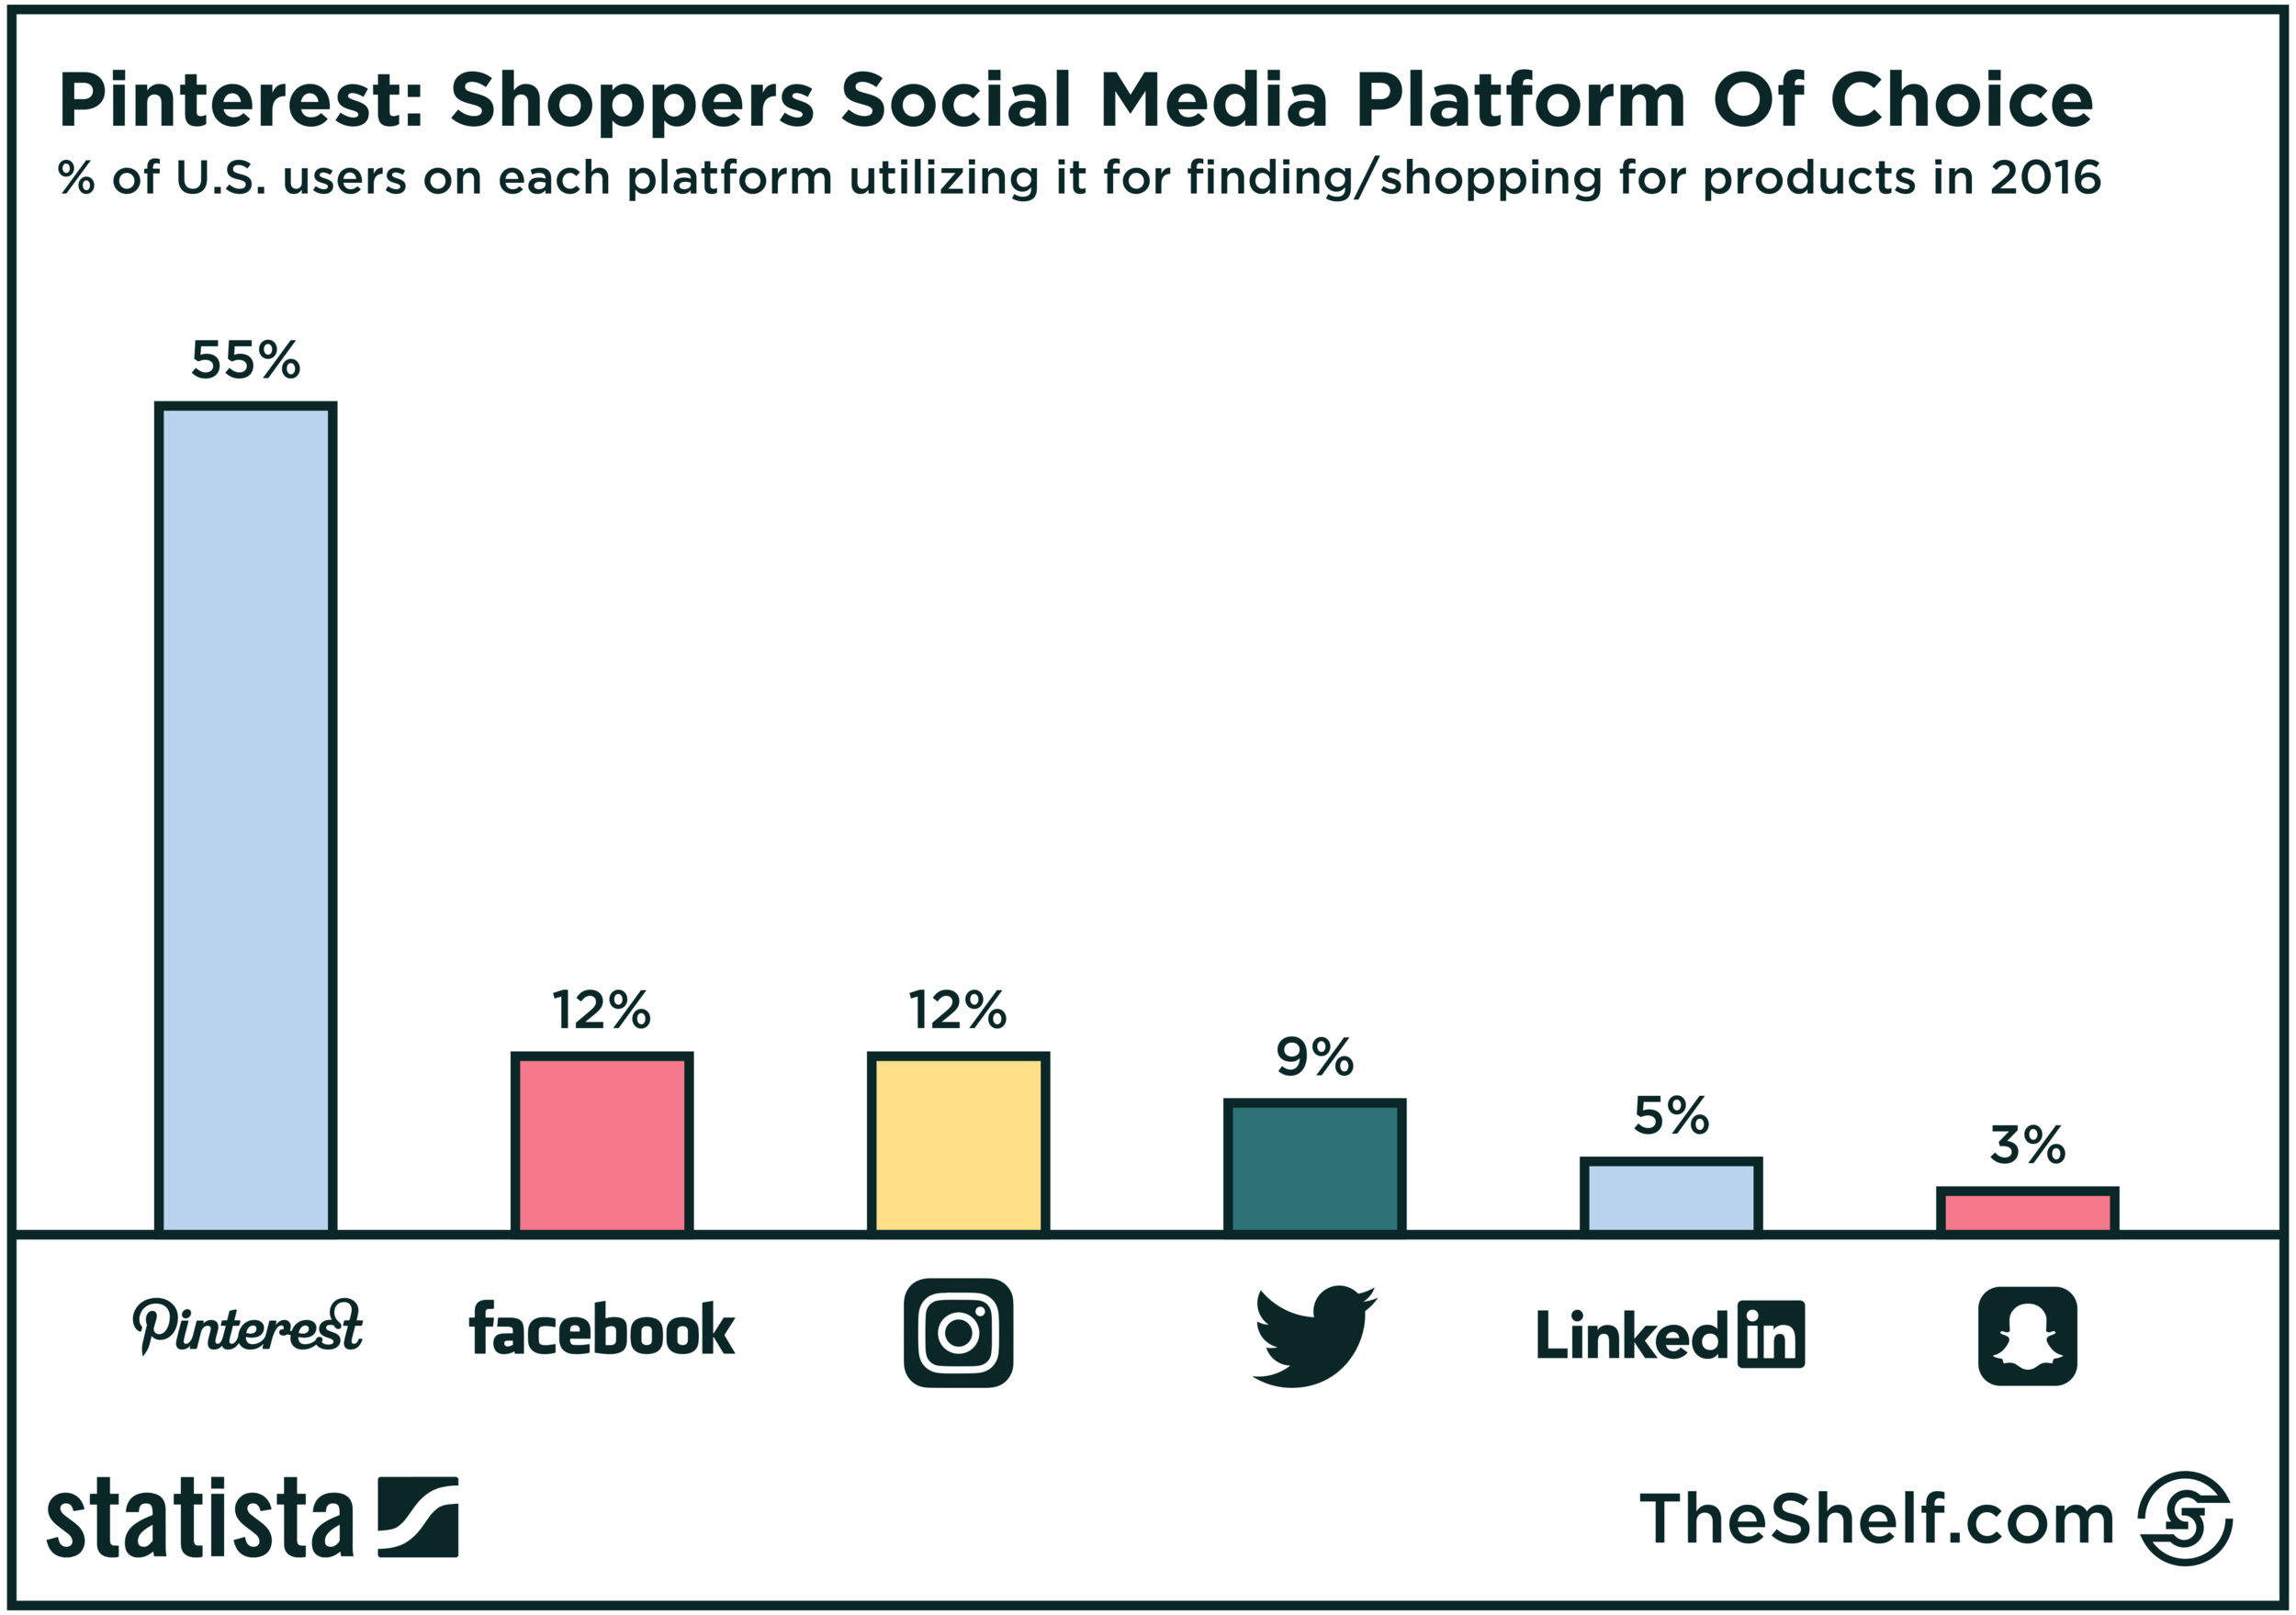 recreation of Statista chart - Pinterest Shoppers Social Media Platform of Choice